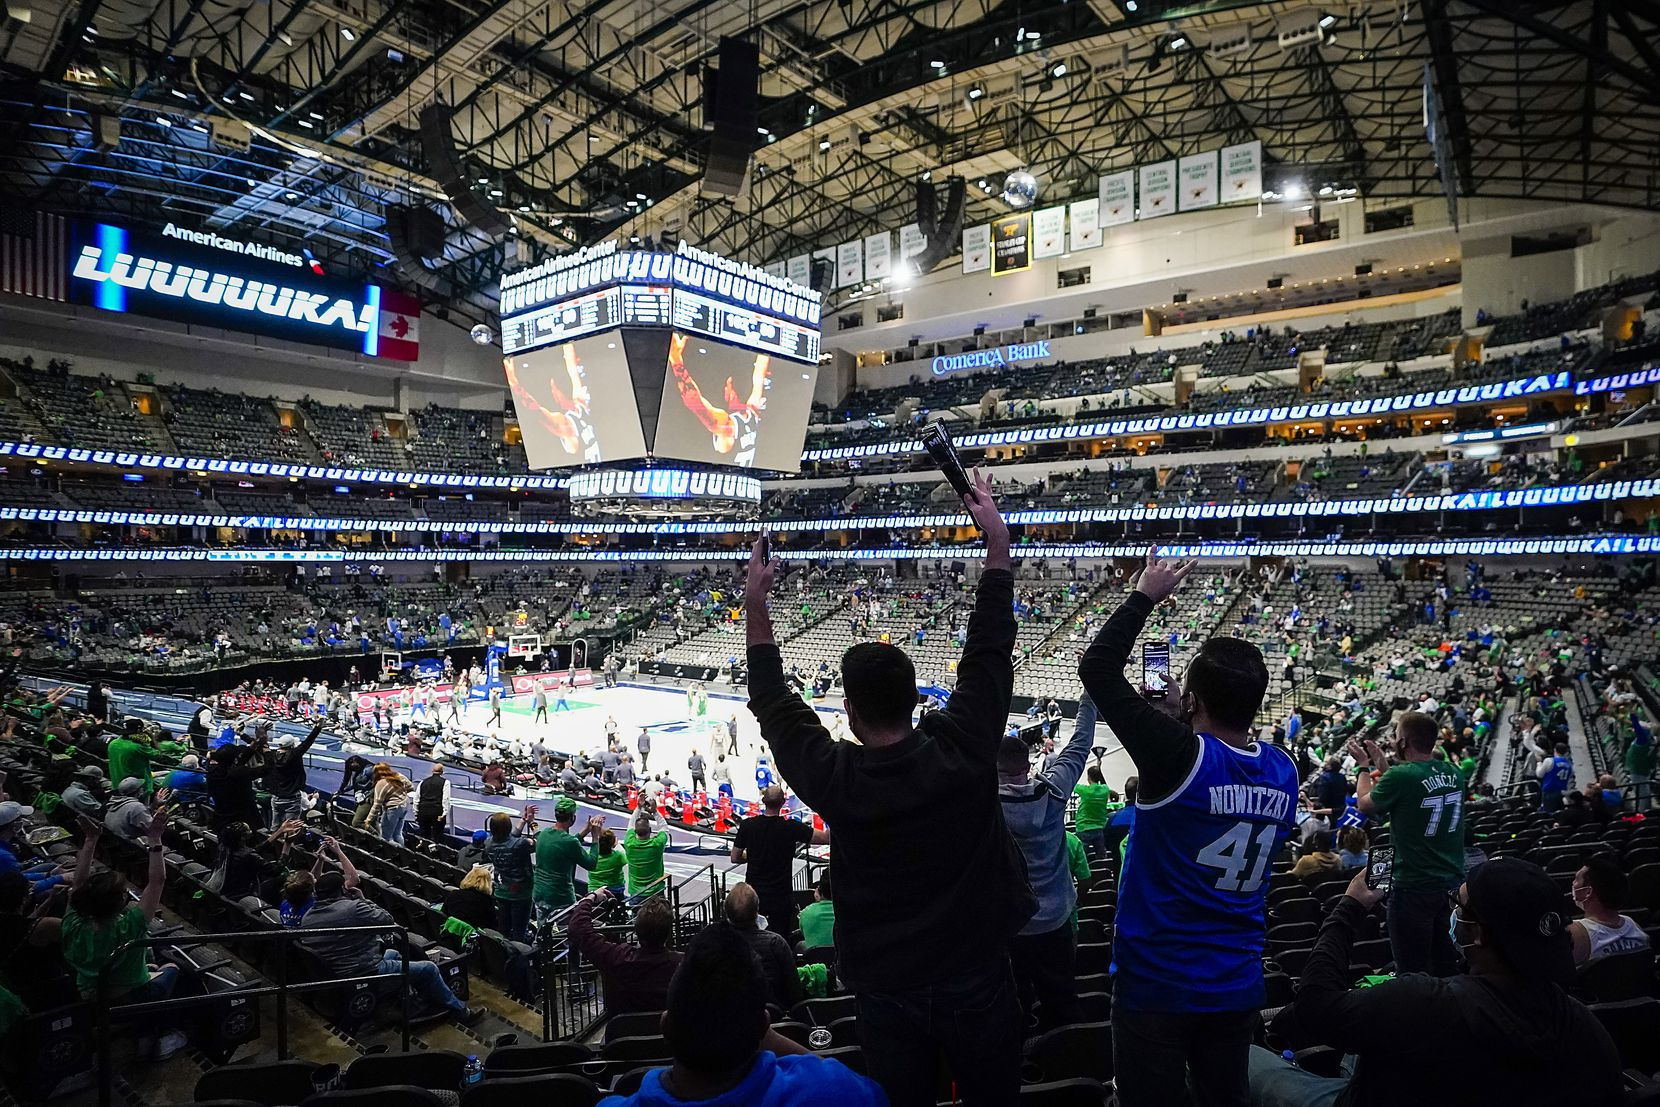 Dallas Mavericks fans celebrate a basket by guard Luka Doncic during the second half of a victory over the LA Clippers in an NBA basketball game at American Airlines Center on Wednesday, March 17, 2021, in Dallas.